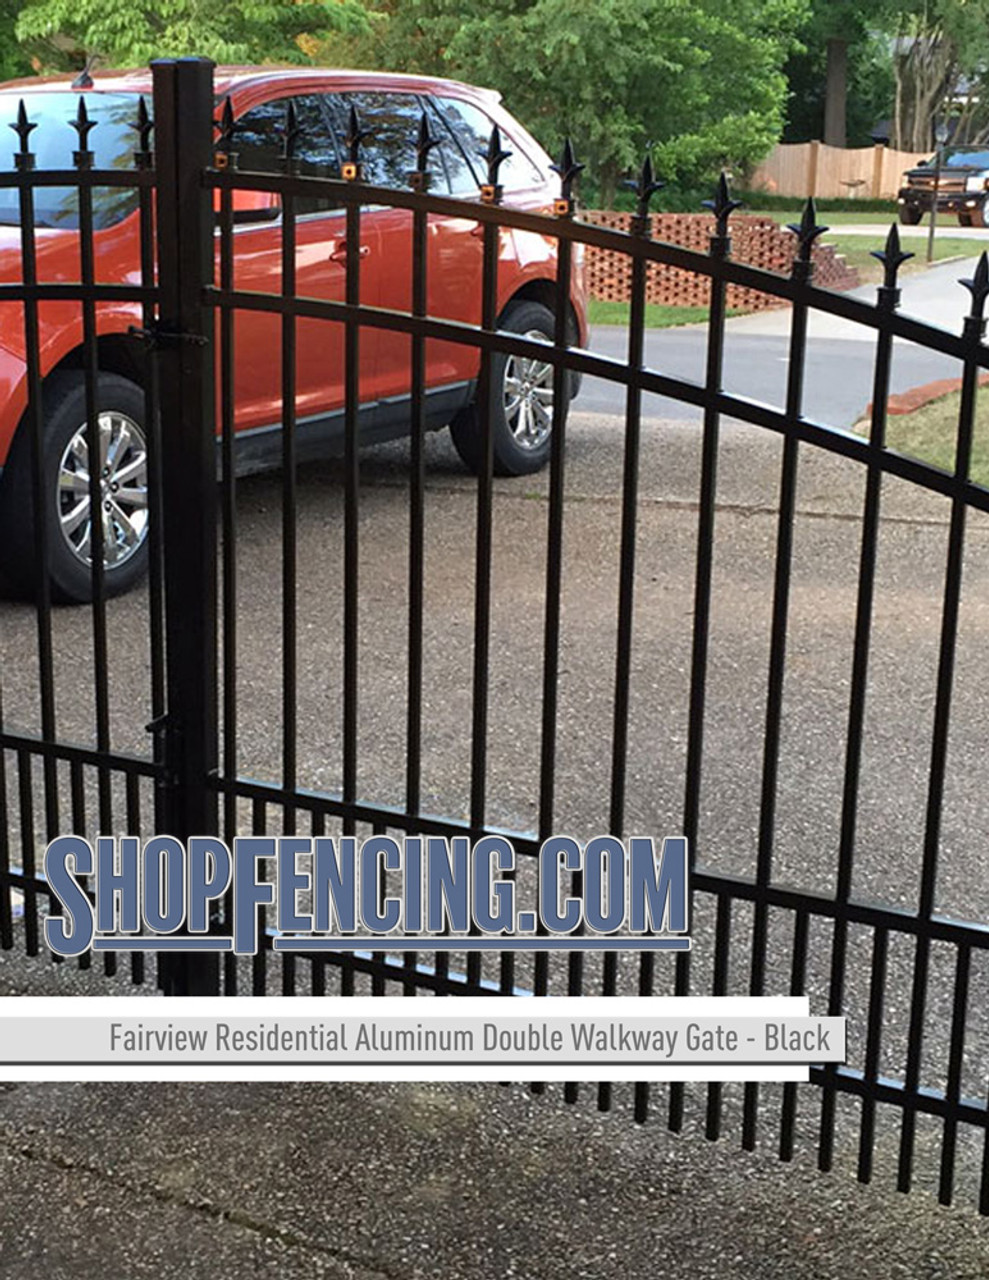 Residential Fairview Aluminum Double Walkway Gate - Rainbow Arch Puppy Picket From ShopFencing.com